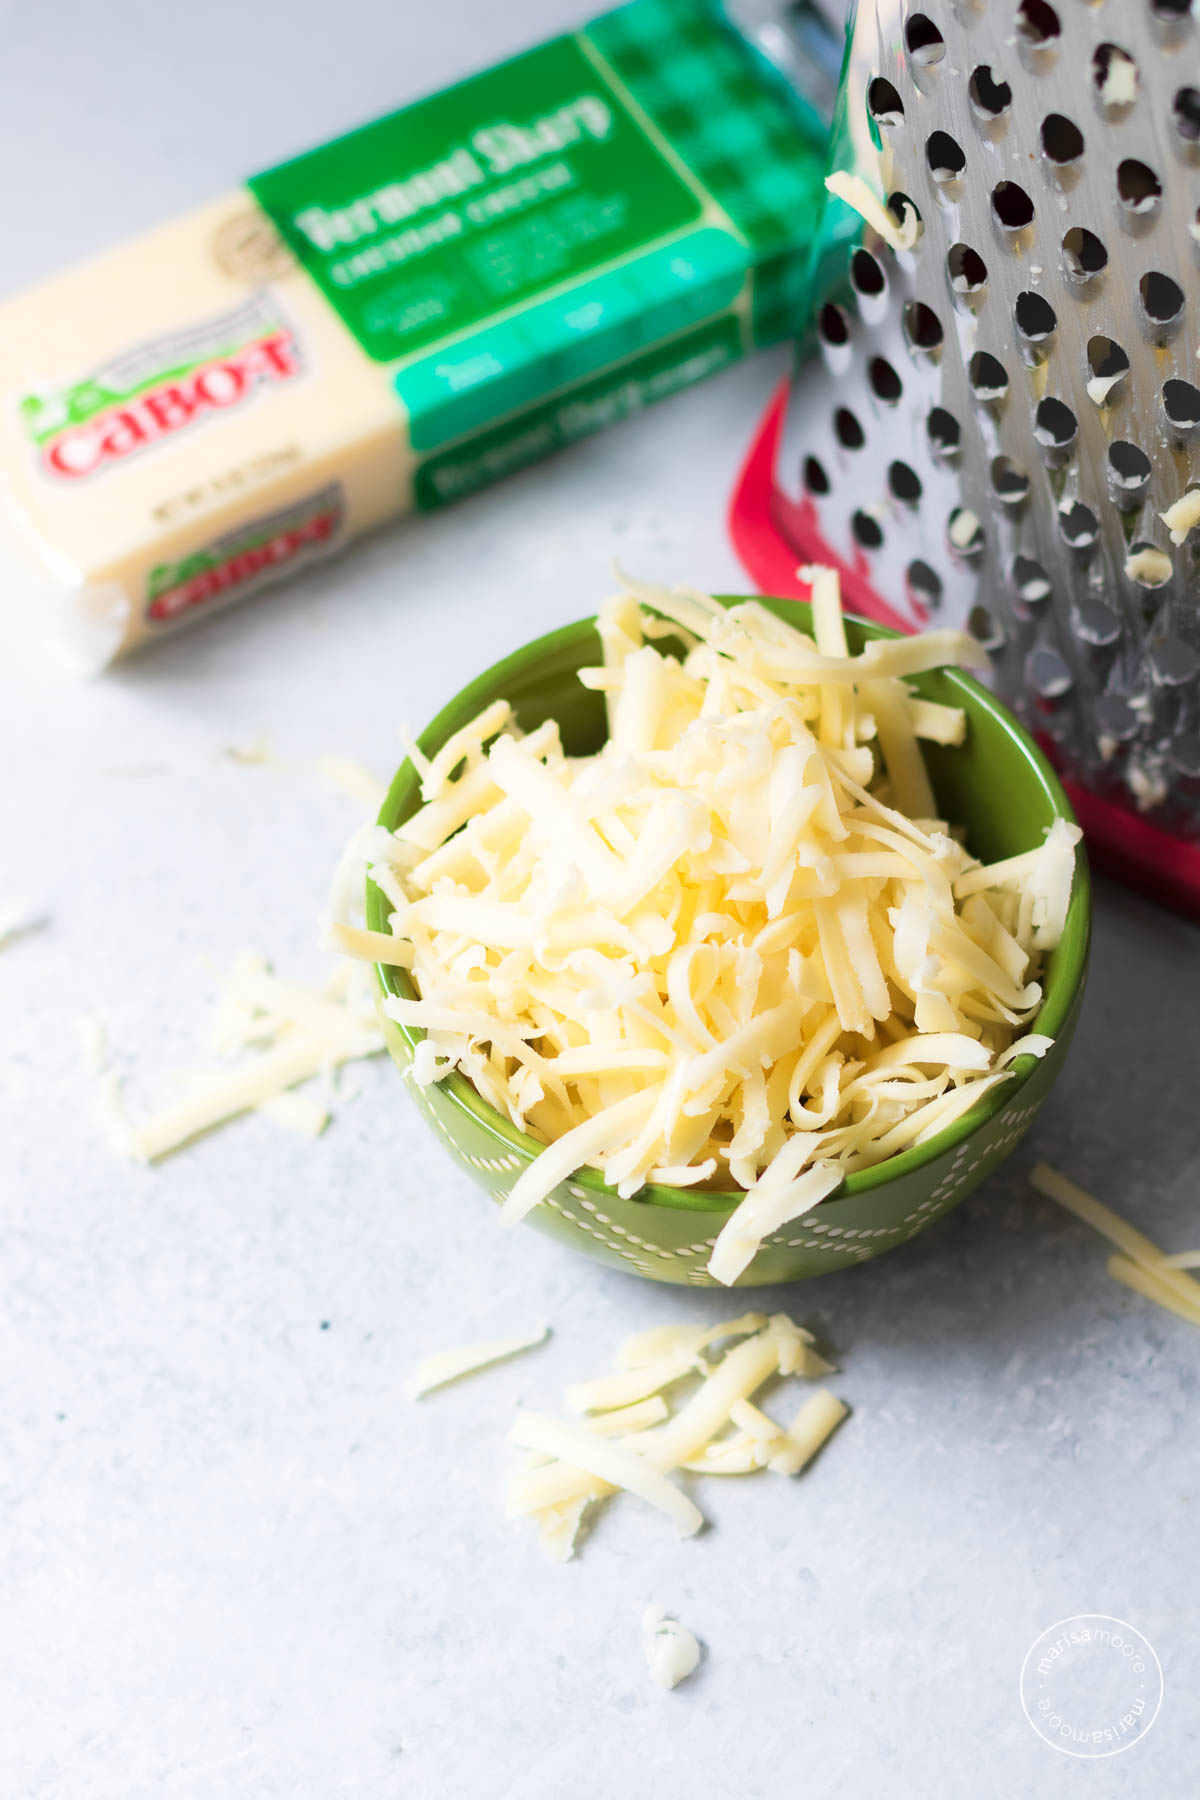 Shredded cheese in a green bowl with a cheese grater in the background